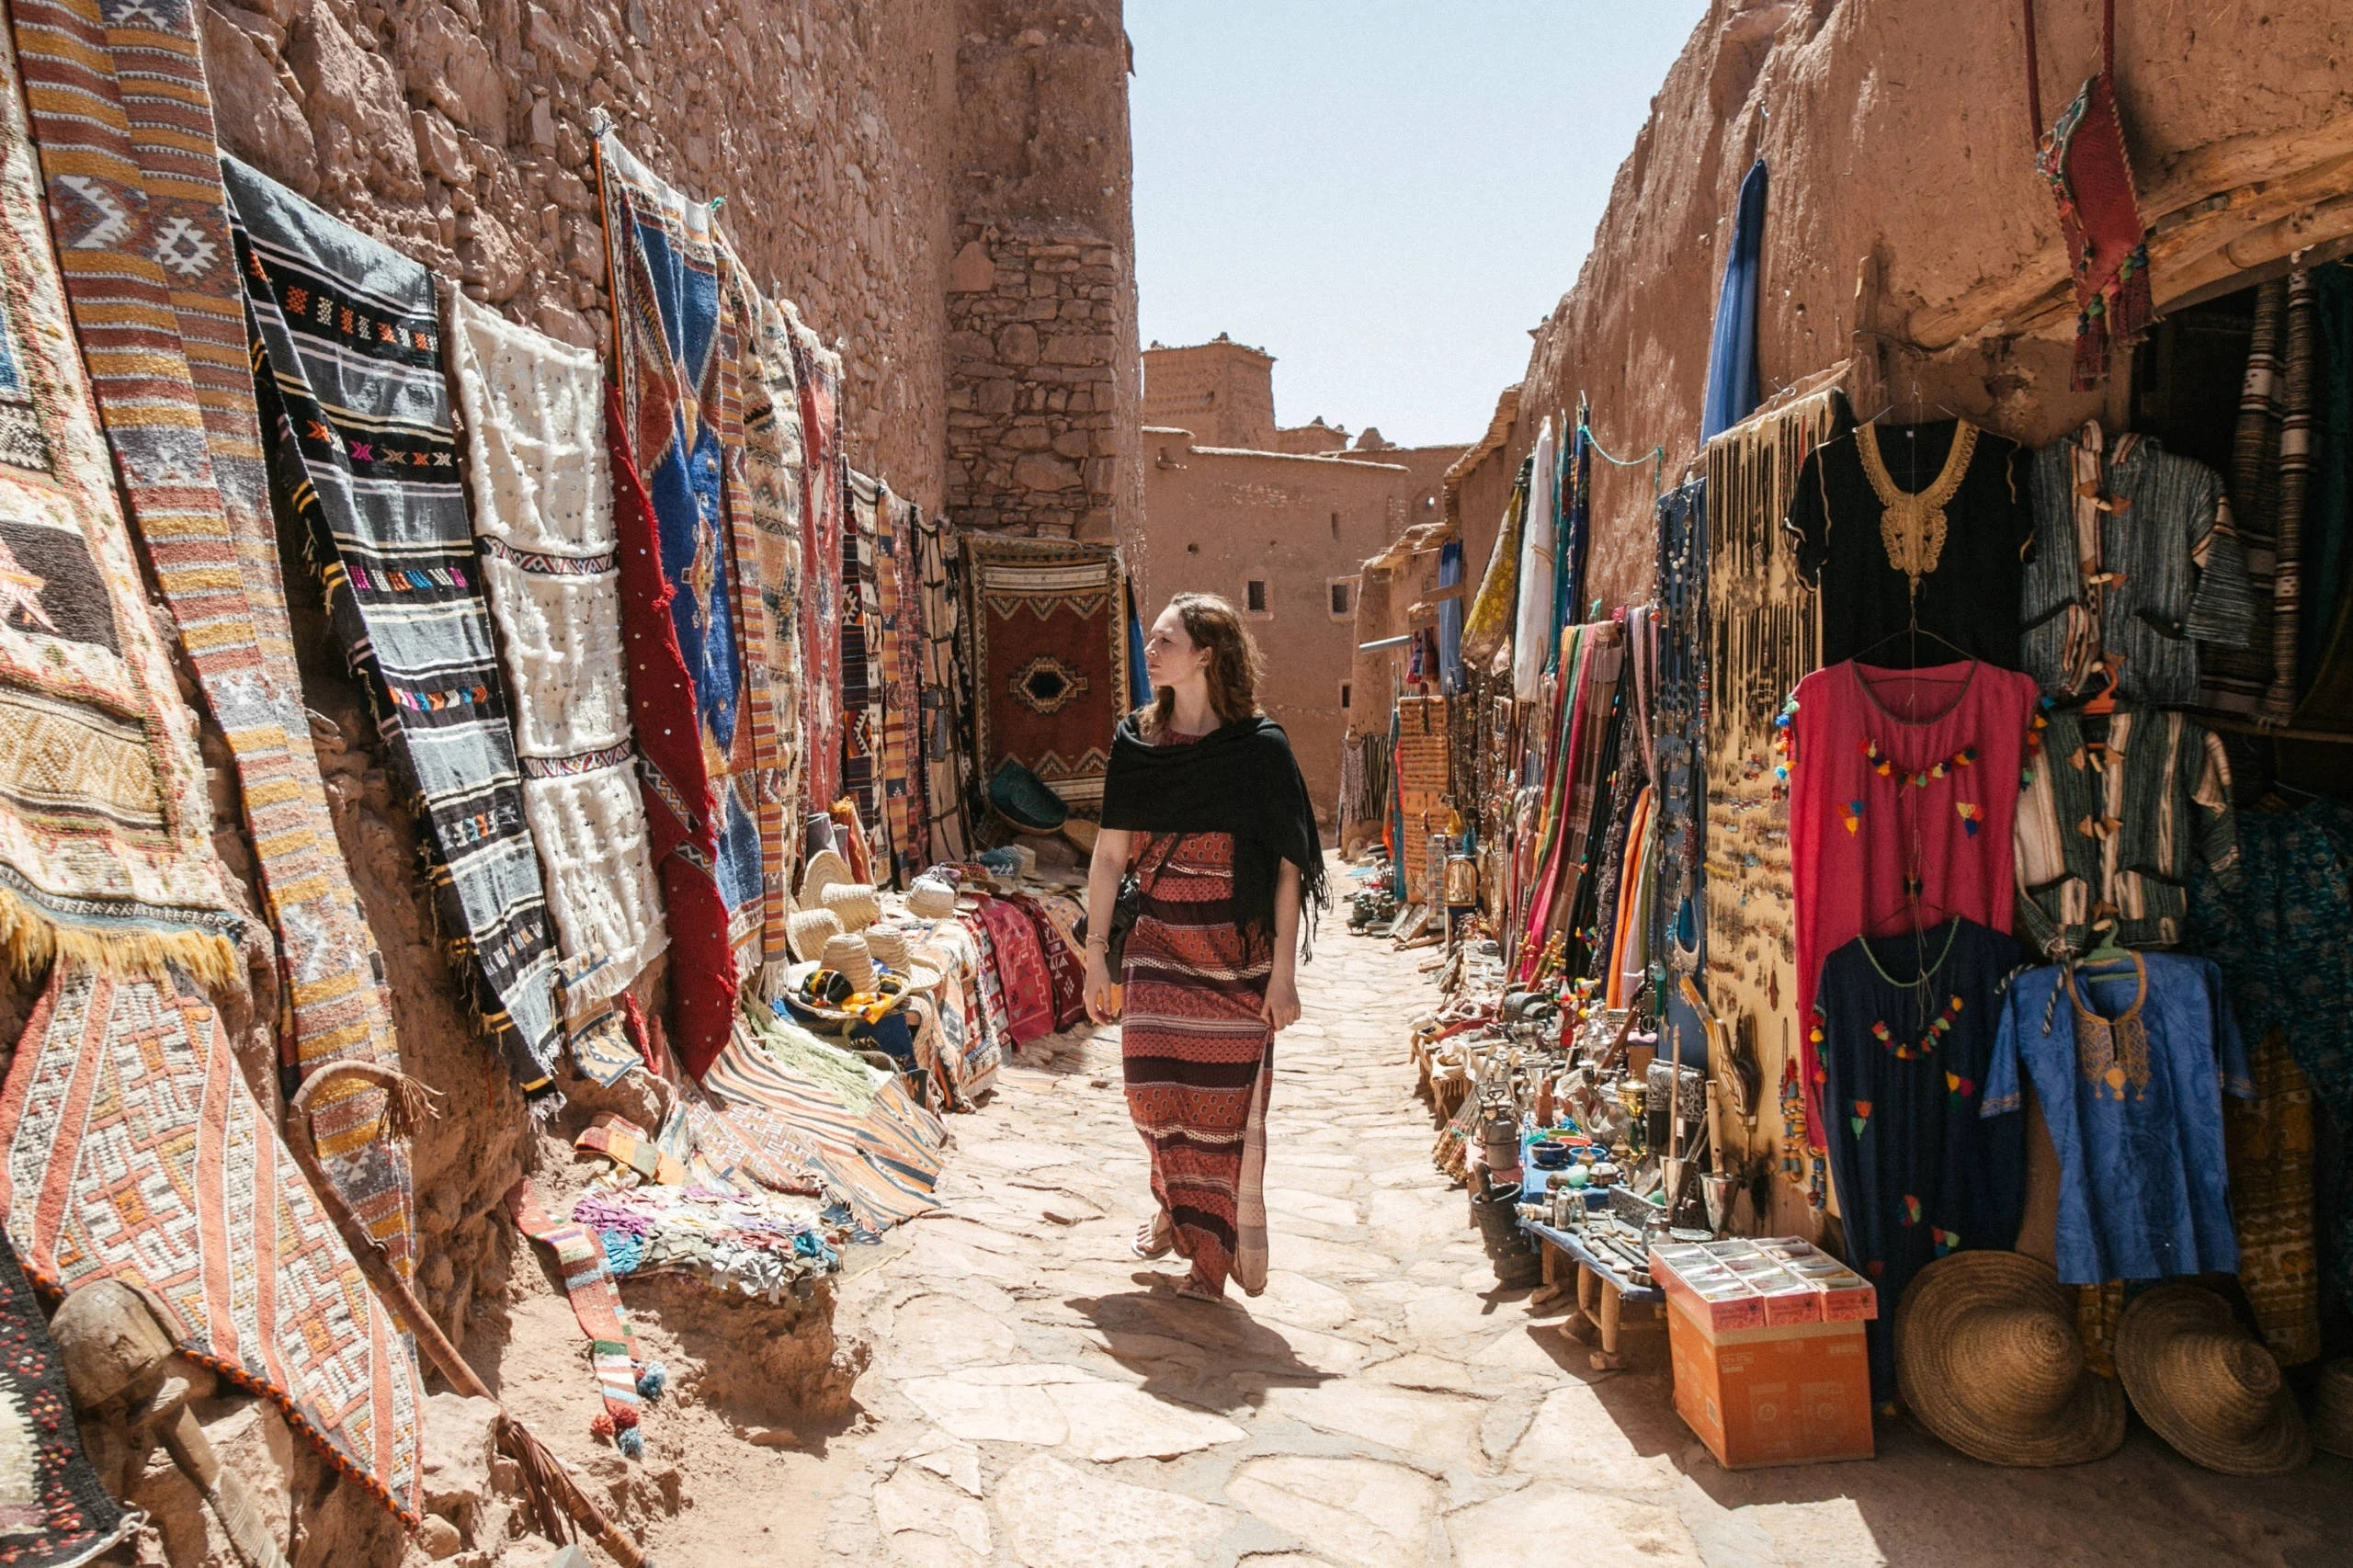 The do's and don'ts of haggling abroad